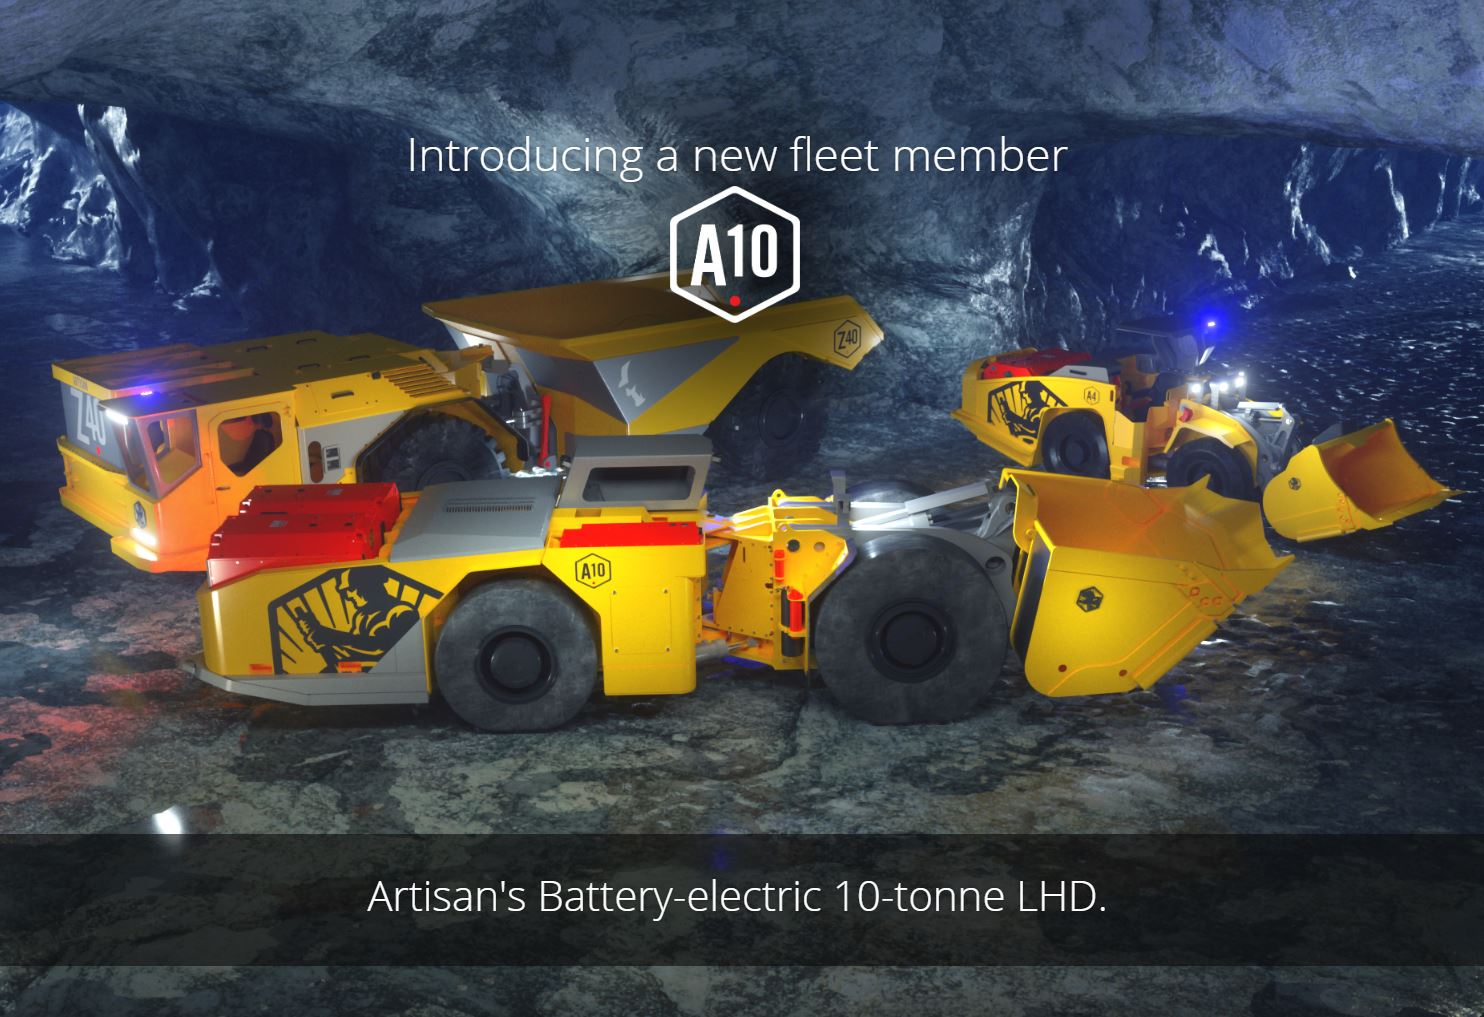 Announcing the all new A10 LHD